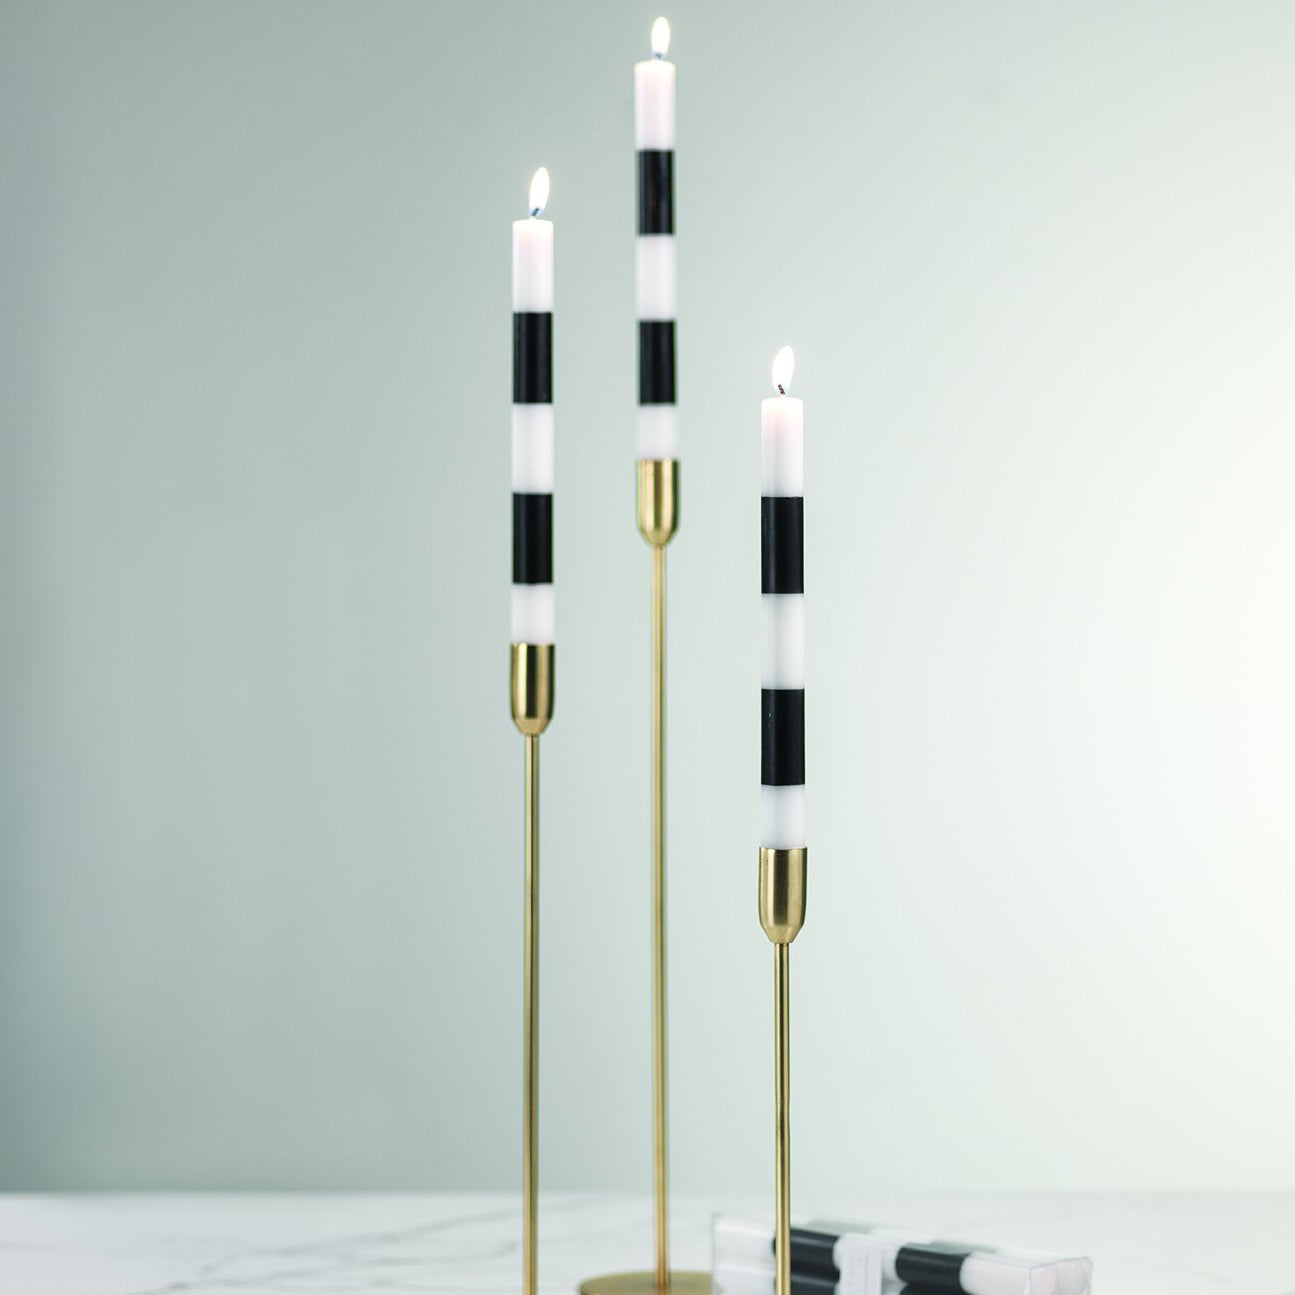 Modern & Festive Black Formal Taper Candles - Box of 6 - CARLYLE AVENUE